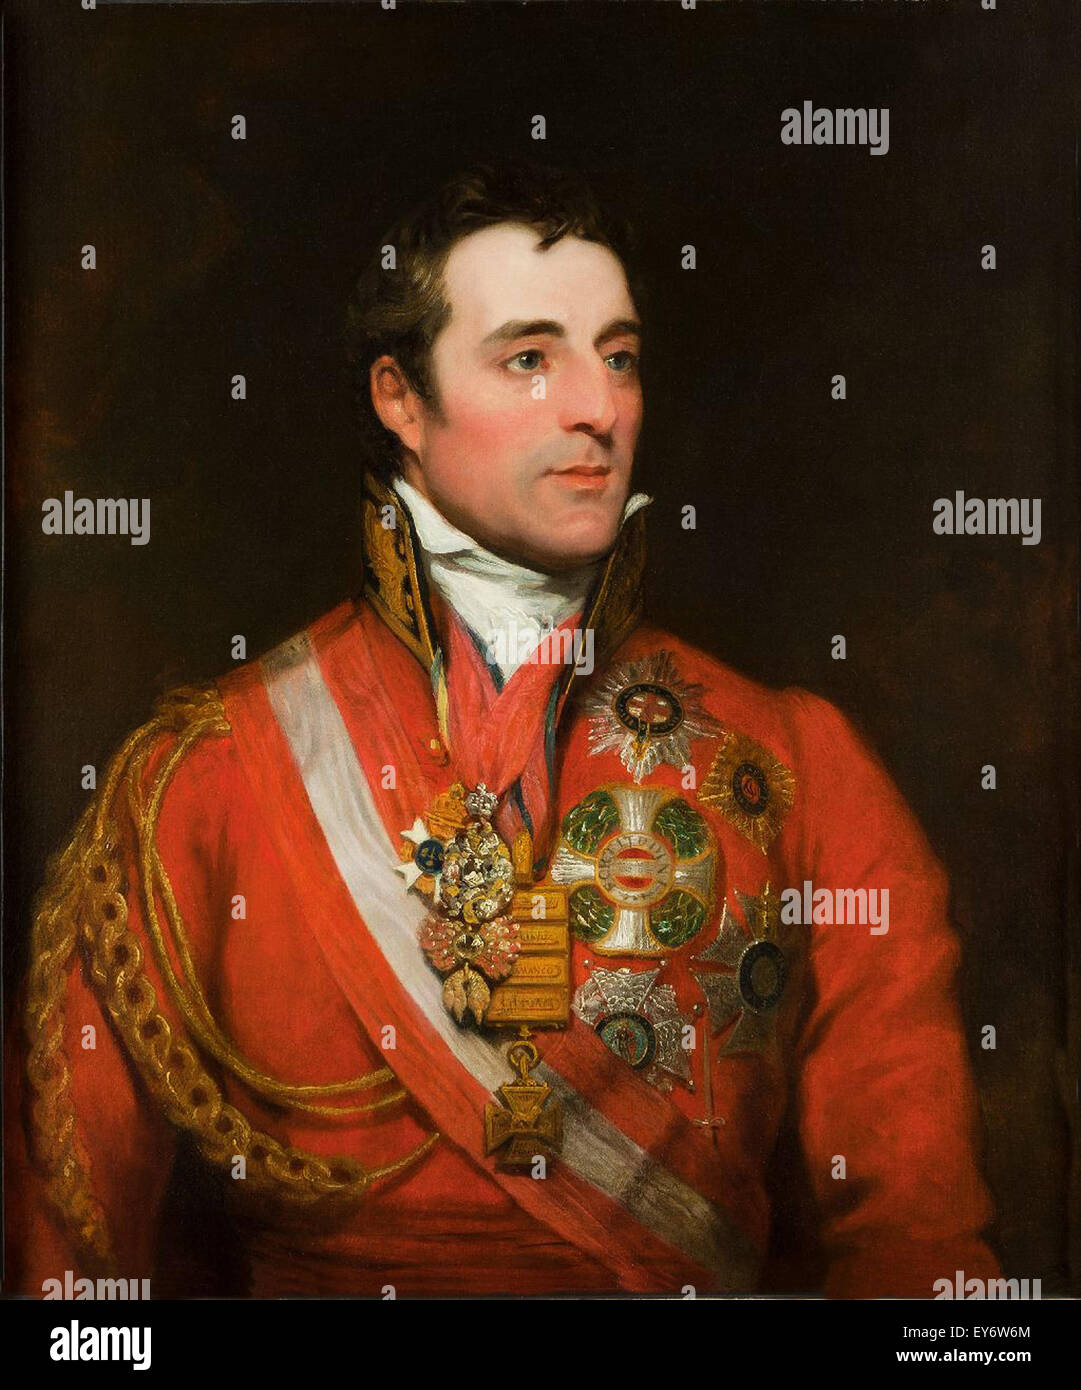 Field Marshal Arthur Wellesley the 1st Duke of Wellington wearing field marshal's uniform with Order of the Golden - Stock Image